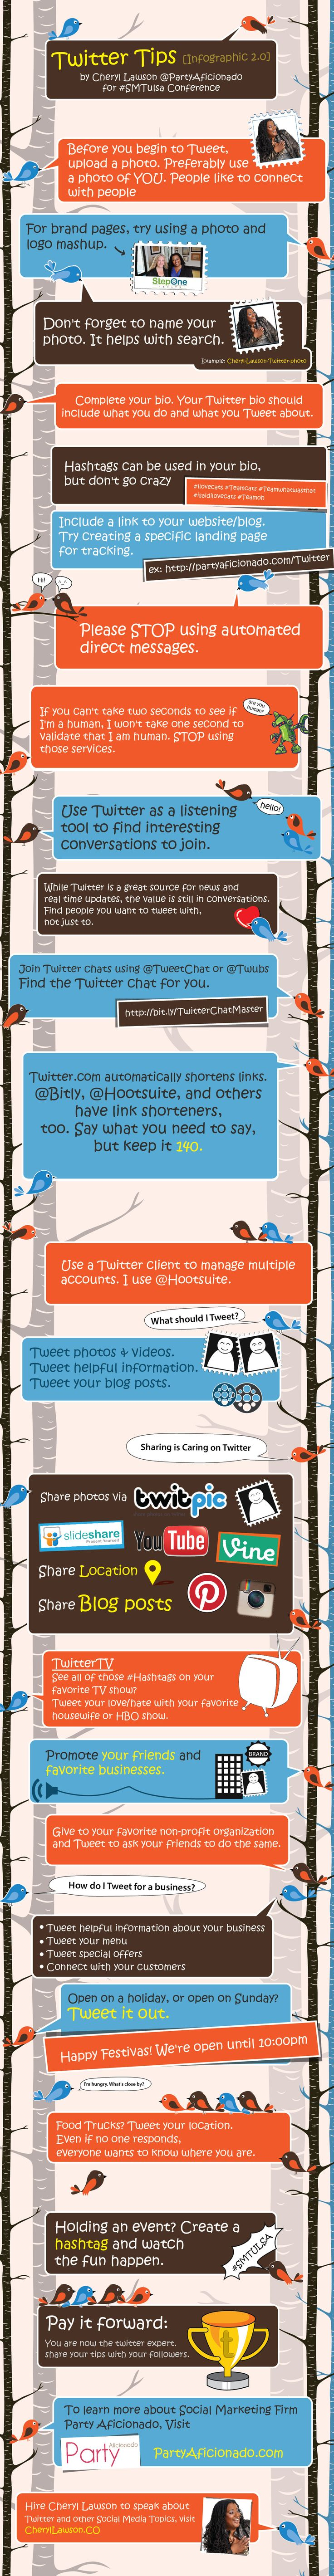 Basic, but very useful #Twitter tips - #Infographic